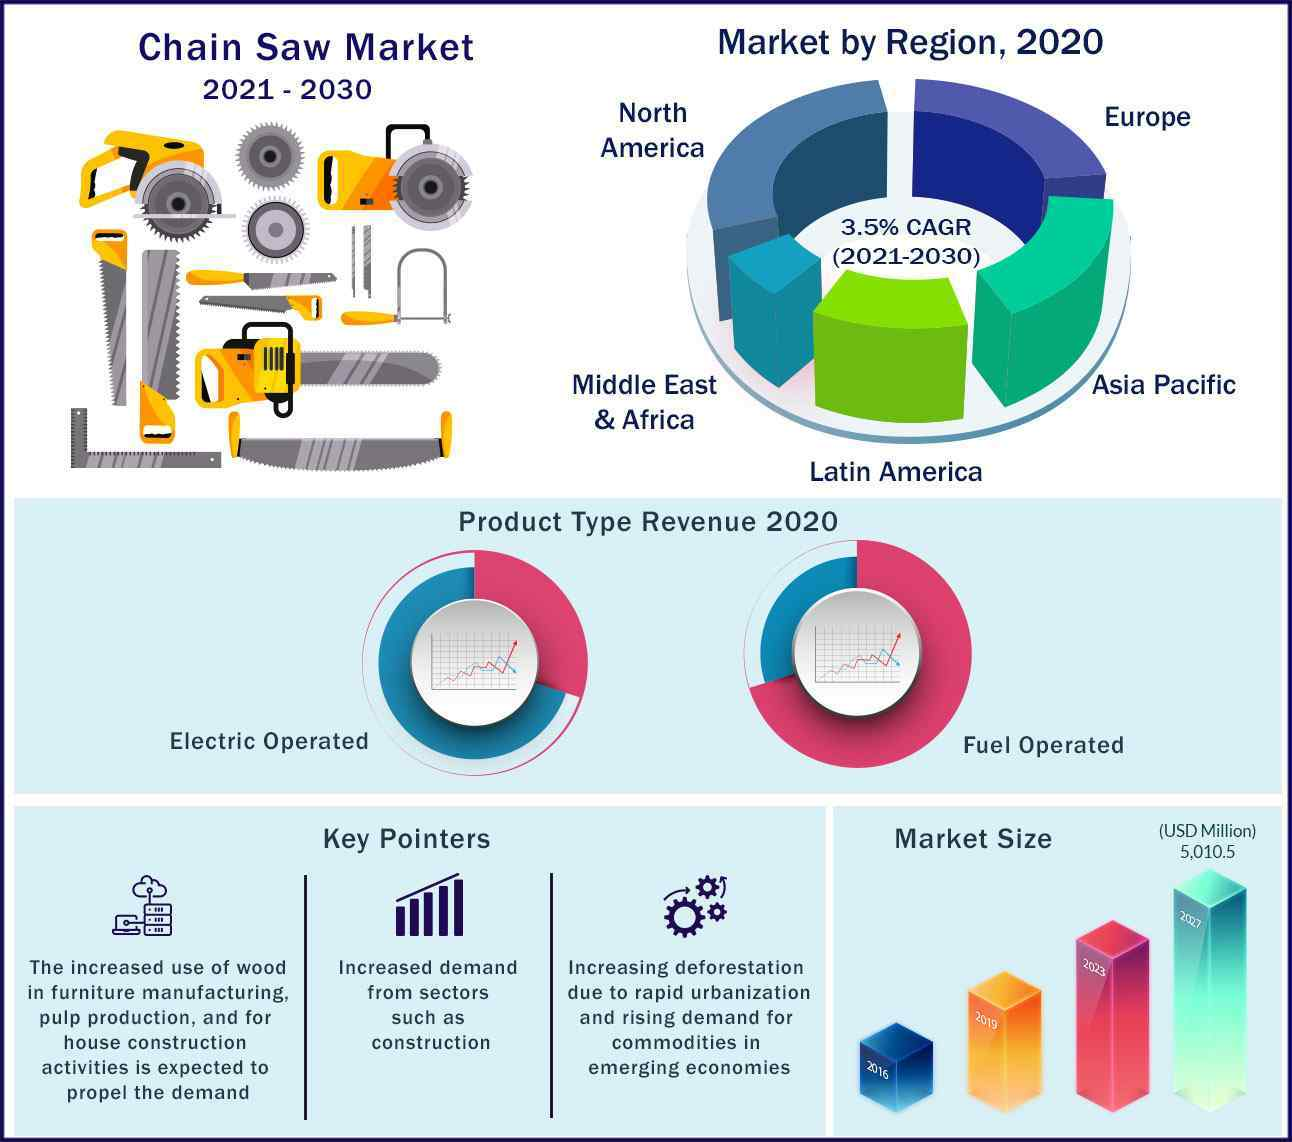 Global Chainsaw Market 2021-2030